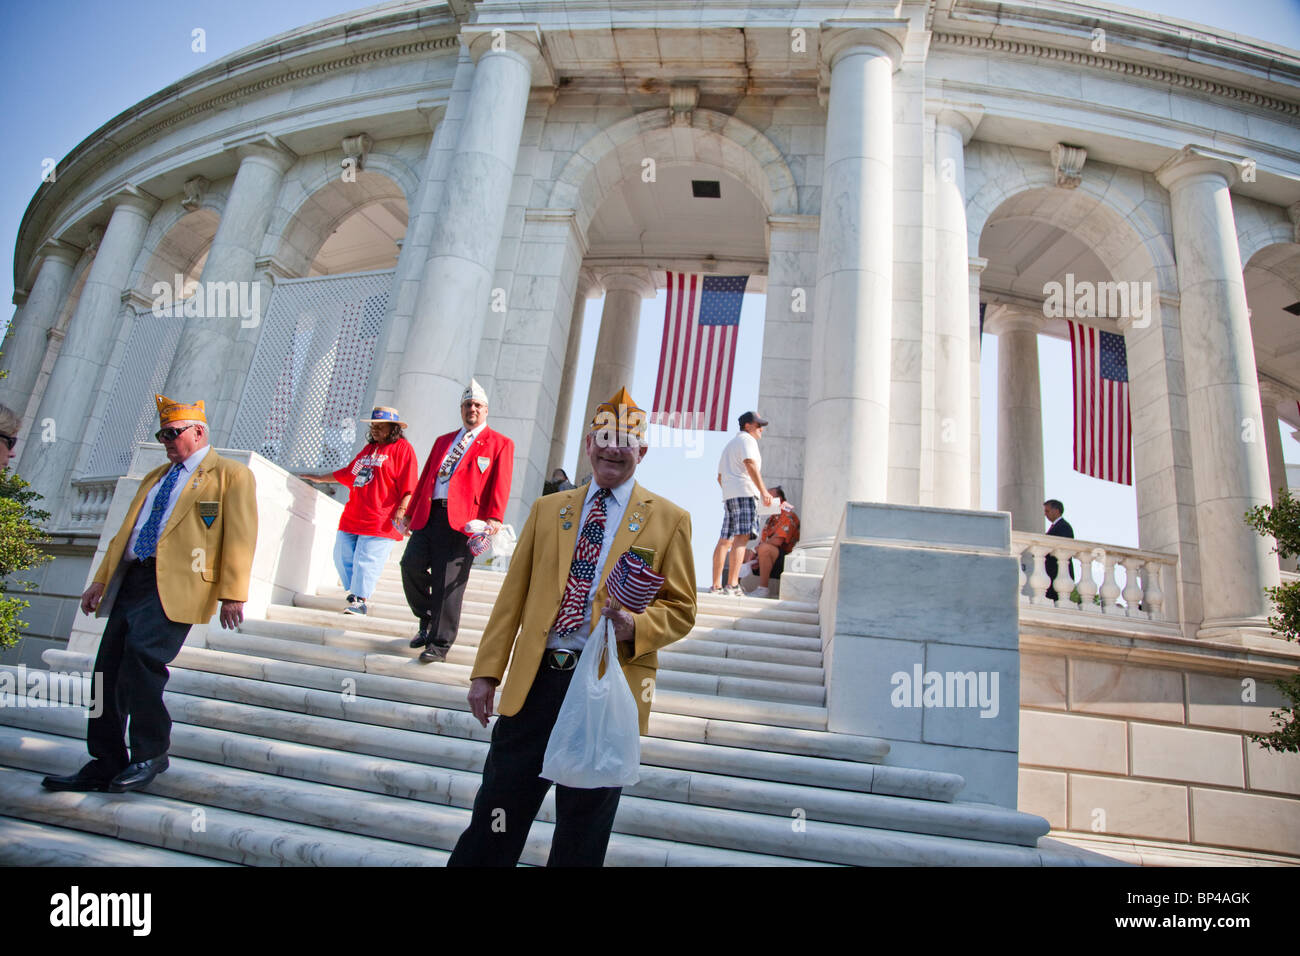 Veterans pass out American flags to visitors at the Arlington National Cemetery Memorial Amphitheater on Memorial - Stock Image